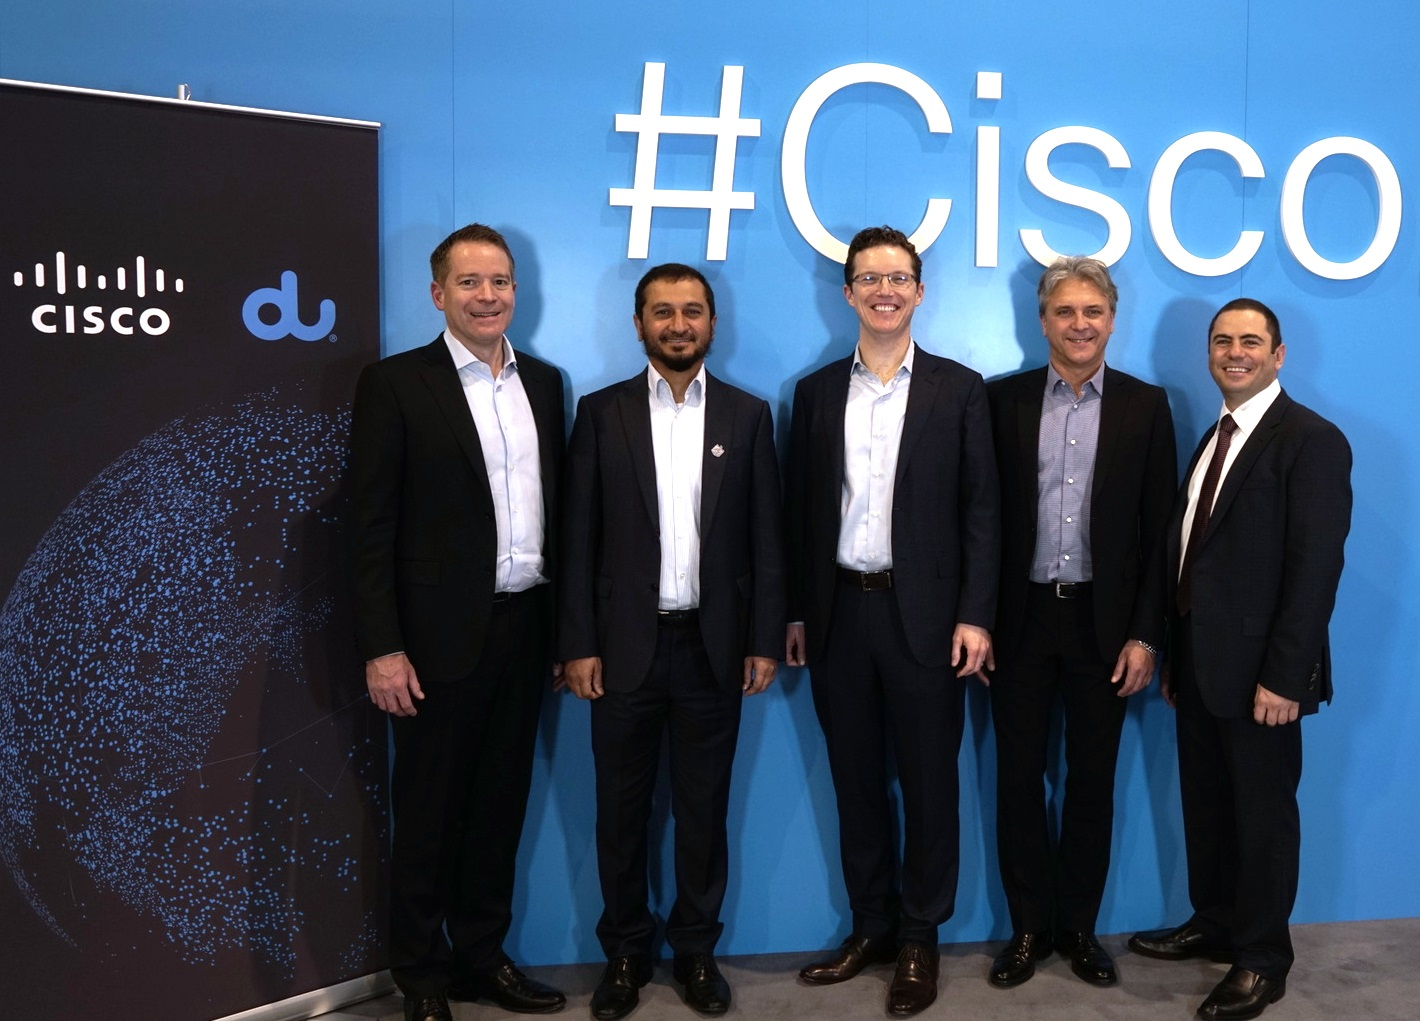 du Collaborates with Cisco on IP Core Network Modernization and Expansion